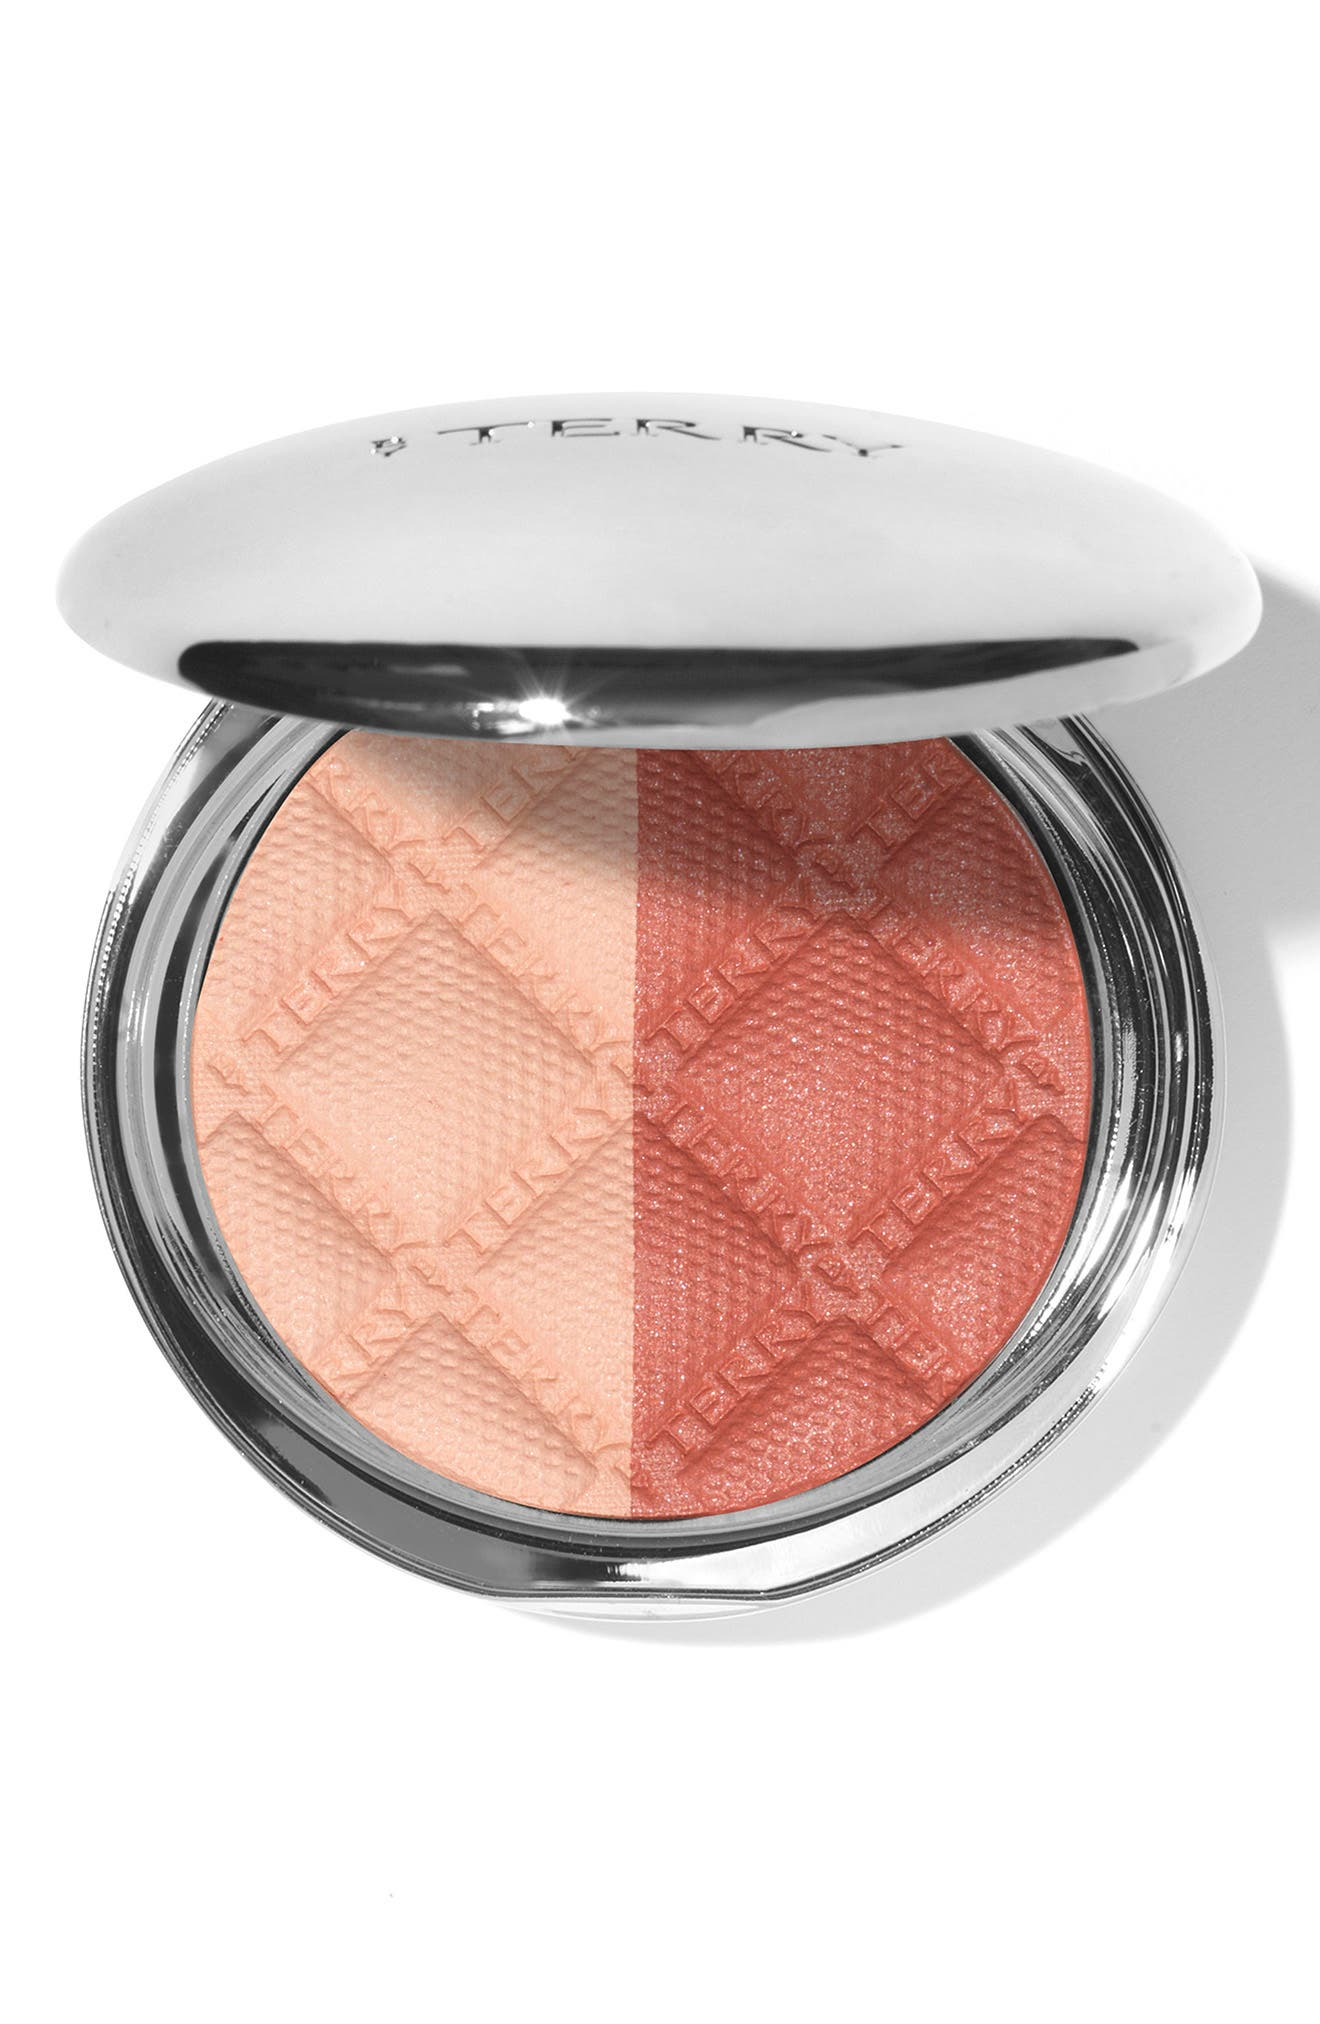 SPACE.NK.apothecary By Terry Terrybly Densiliss<sup>®</sup> Blush Contouring Compact,                             Main thumbnail 1, color,                             400 Rosy Shape